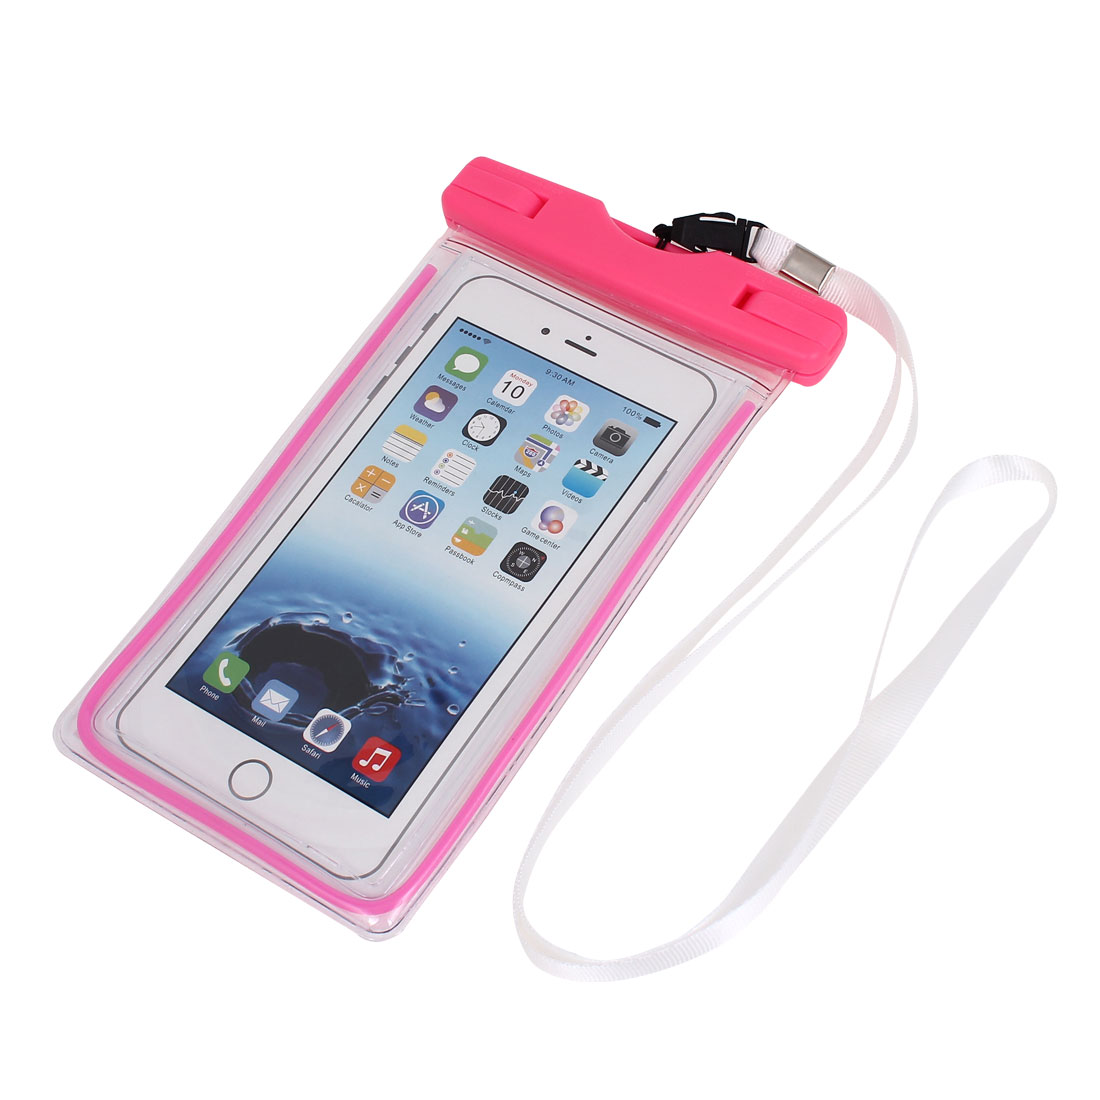 Waterproof Luminous Bag Holder Pouch Pink for iPhone 6 Plus w Neck Strap